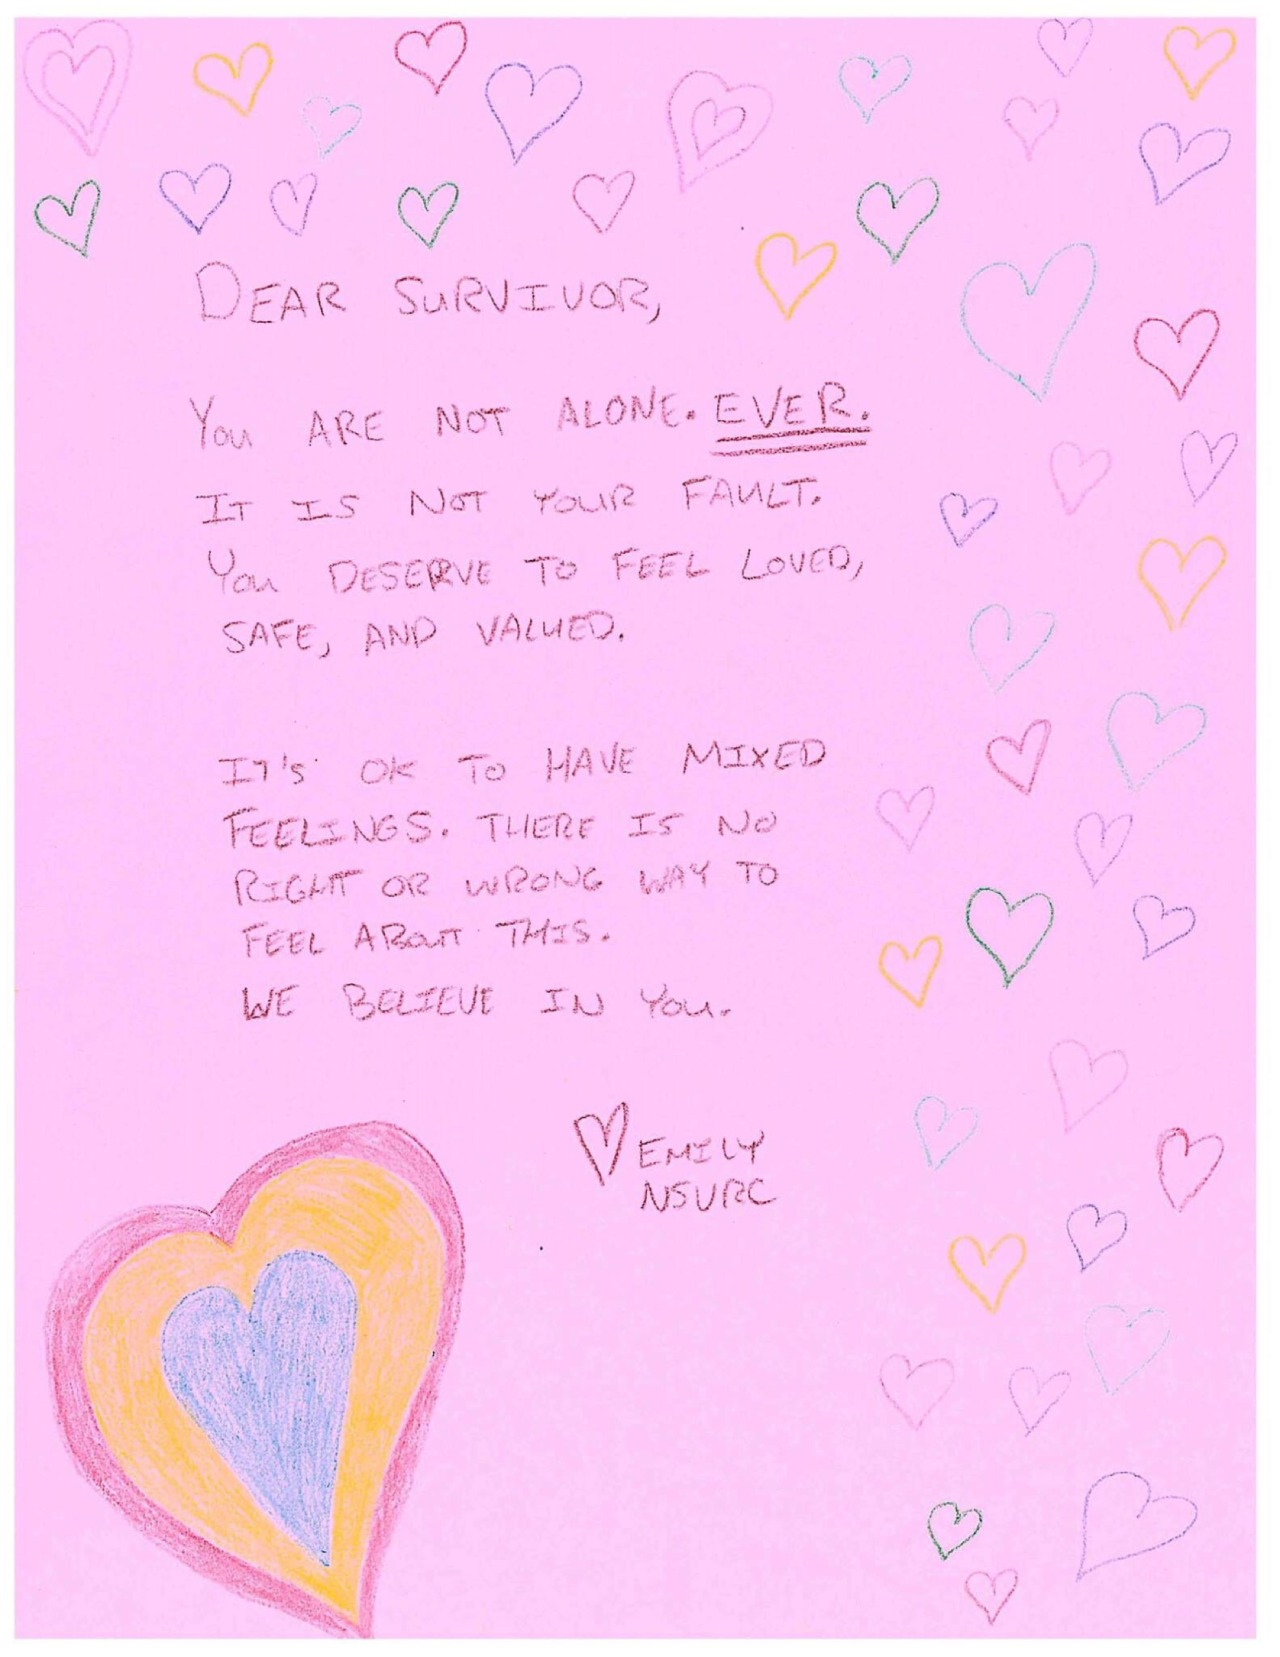 Dear Survivor,  You are not alone. Ever. It is not your fault. You deserve to feel loved, safe and valued.  It's OK to have mixed feelings. There is no right or wrong way to feel about this.  We believe in you.  Love, Emily NSVRC